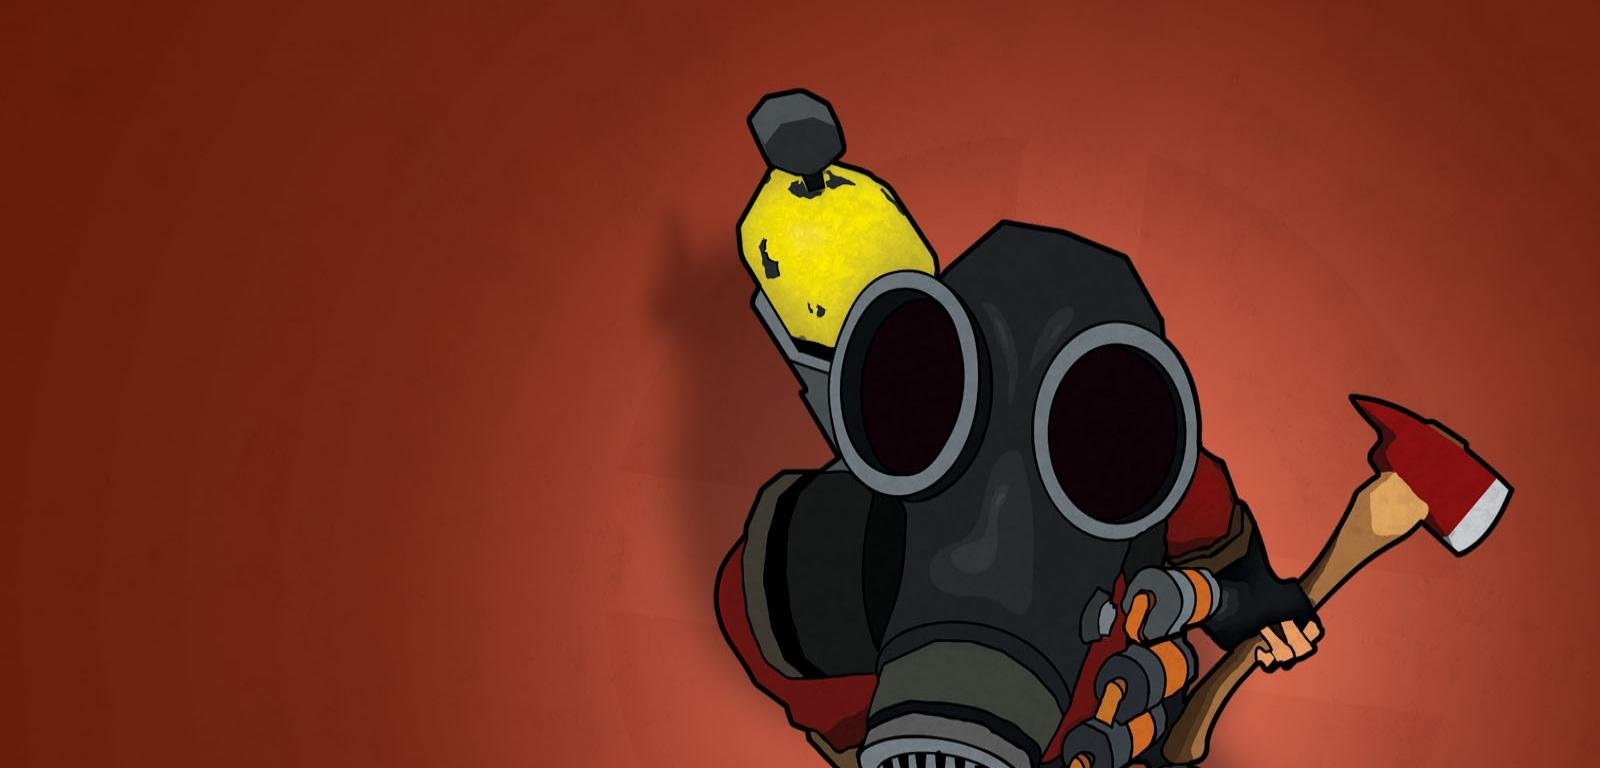 High Resolution Gas Mask Hd 1600x768 Wallpaper Id161578 For